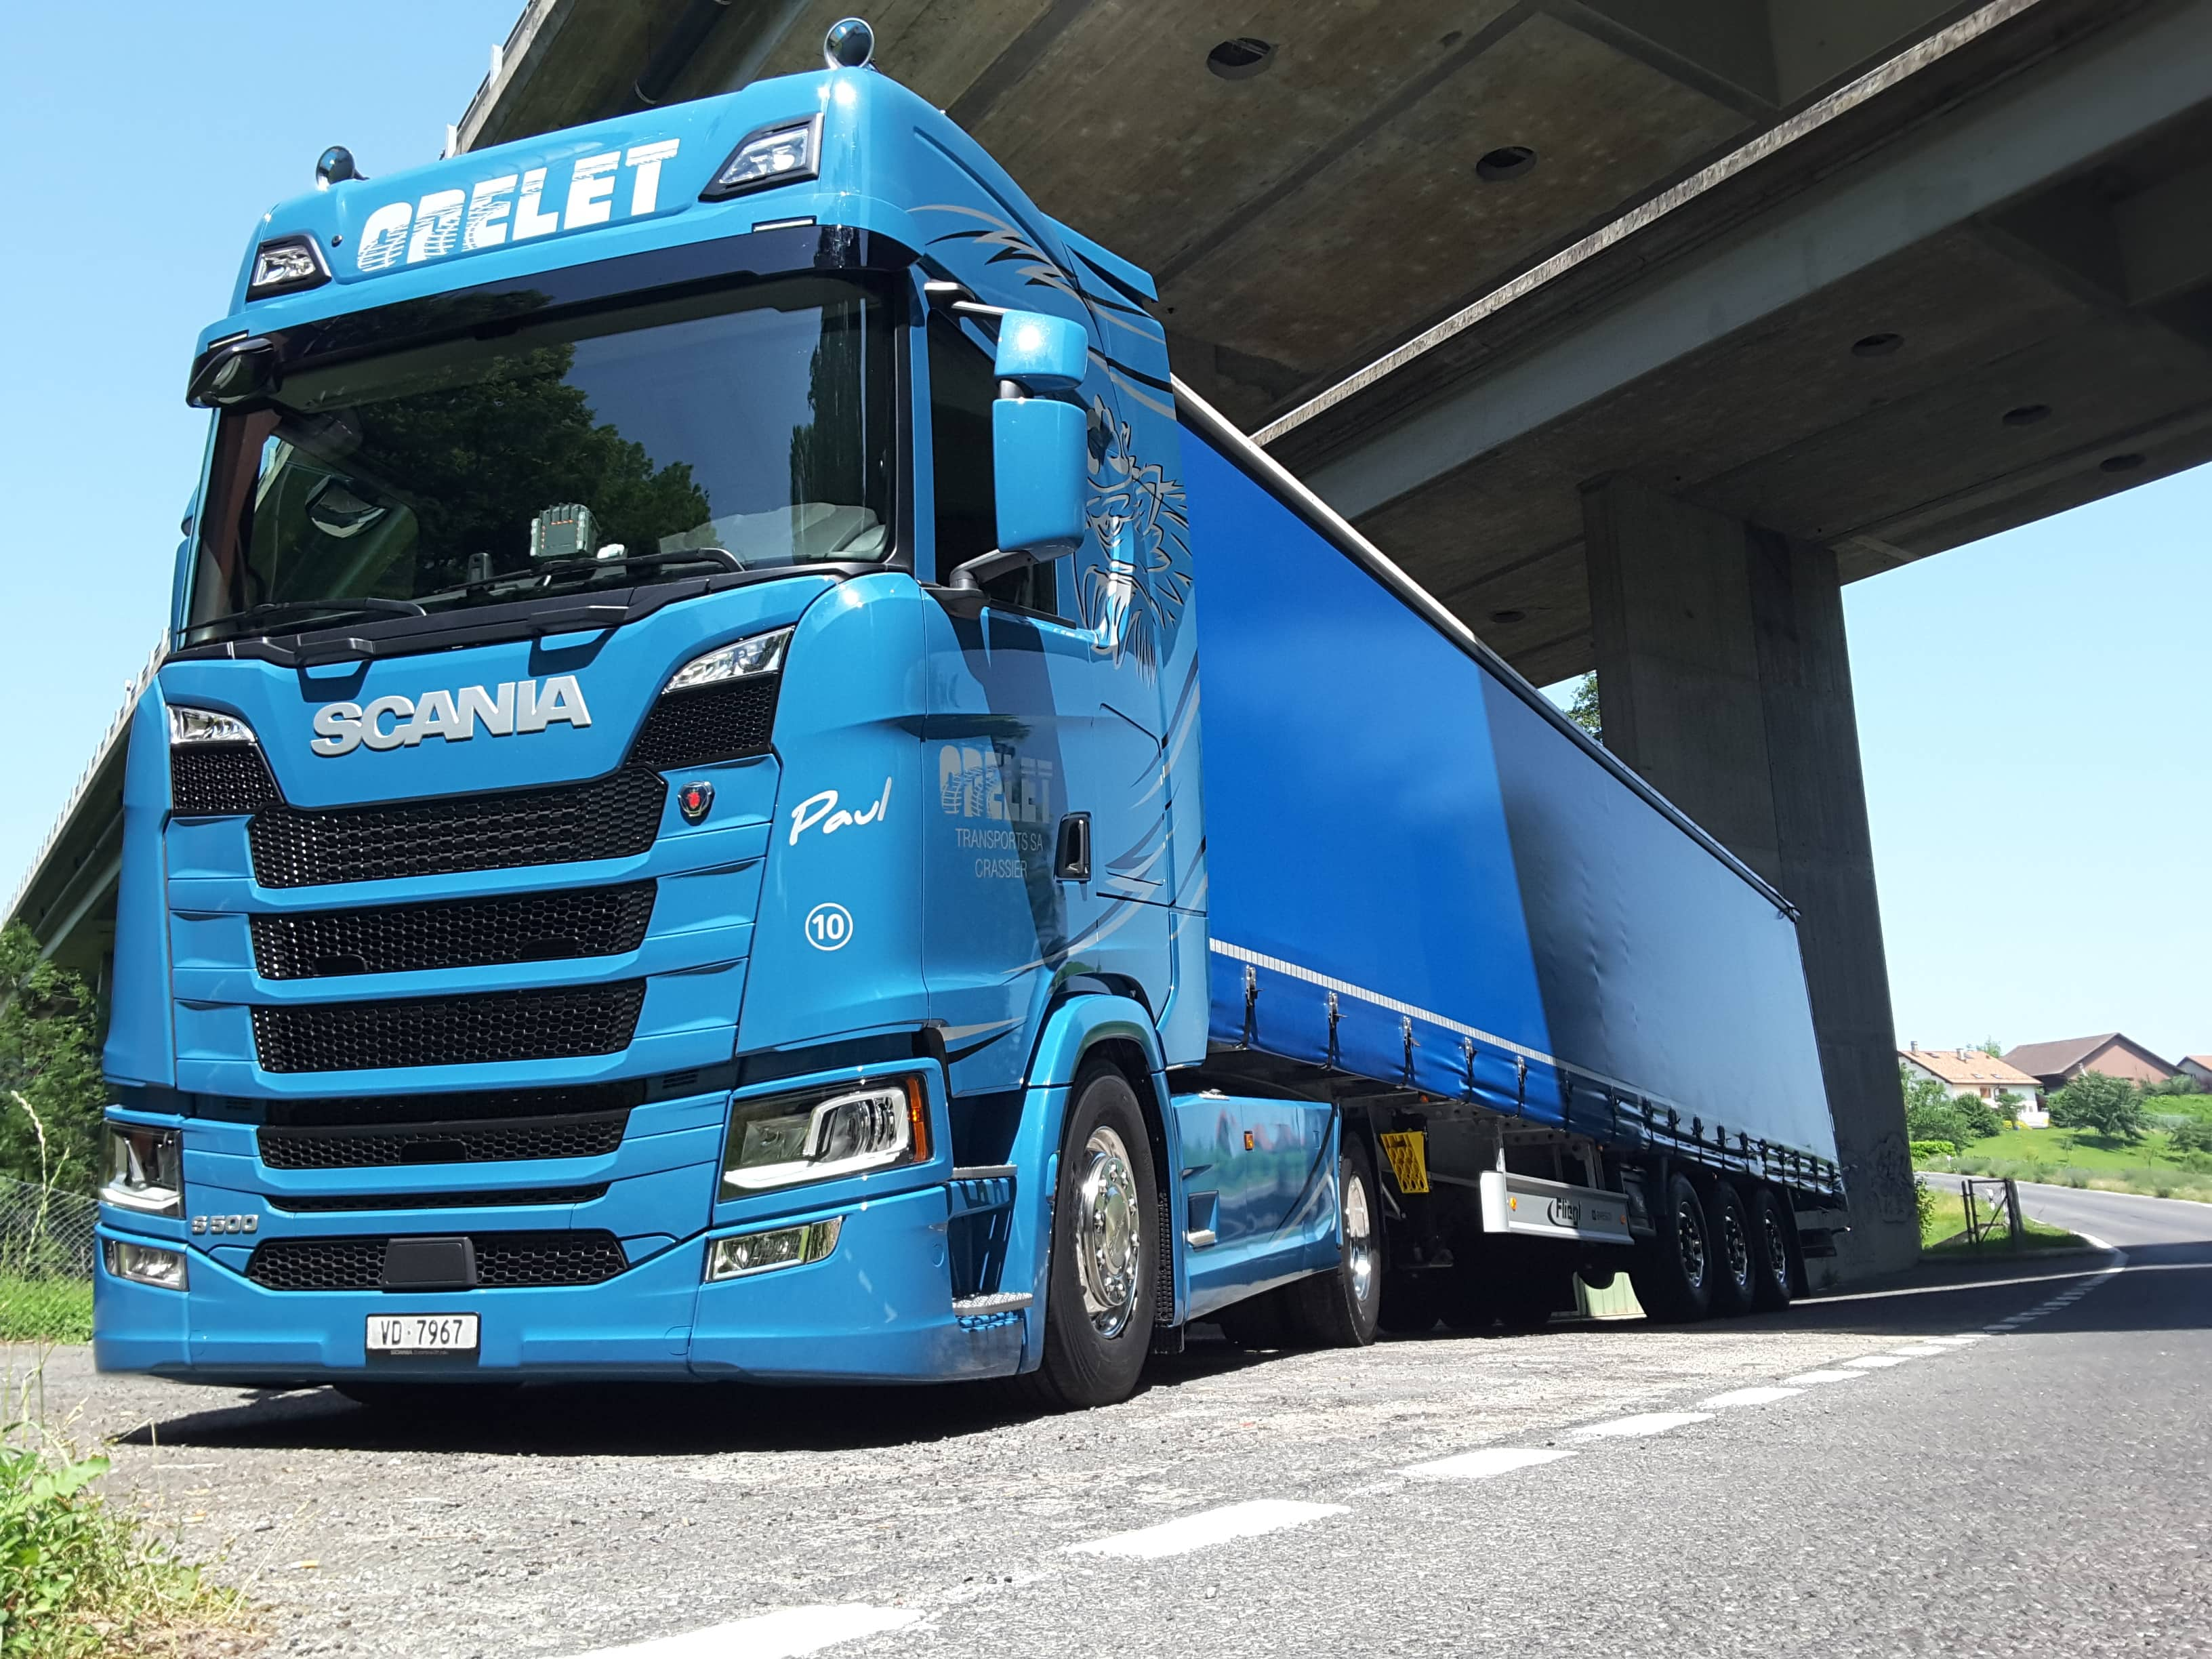 Camion remorque - Odelet Transports SA